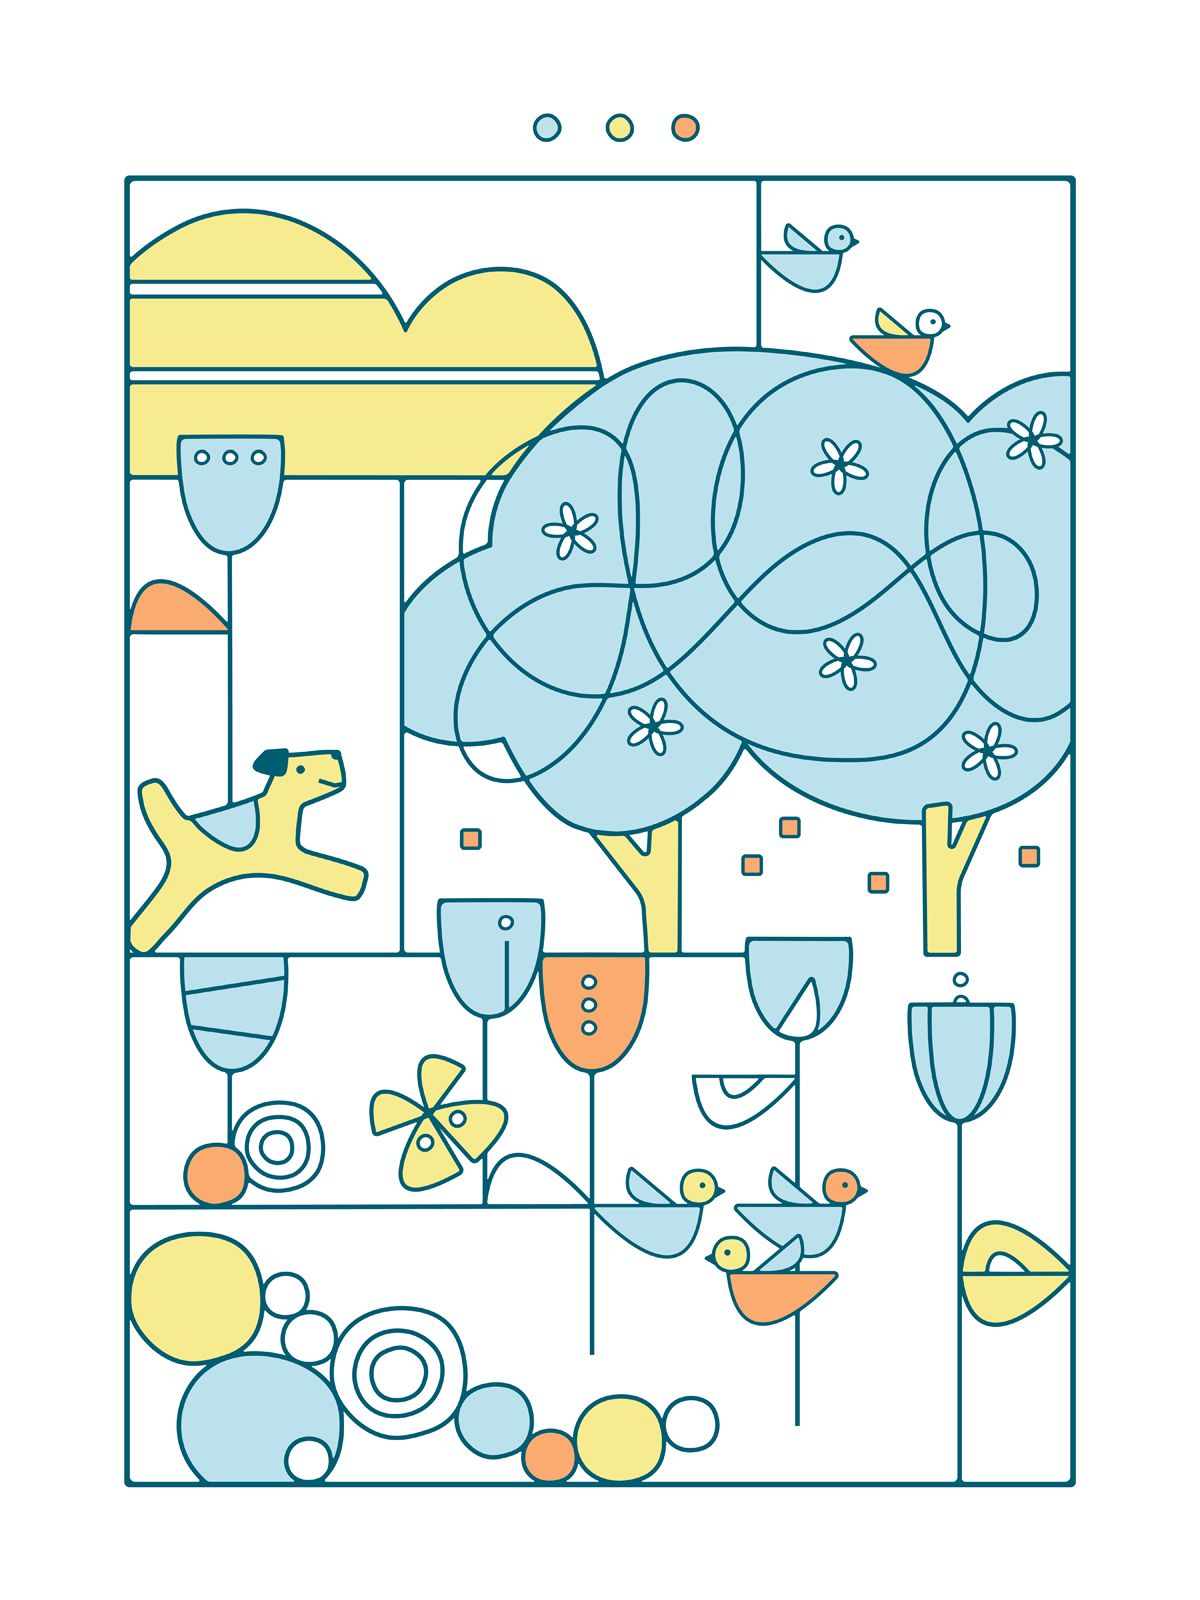 Bold Spirits poster by Monique Kantor